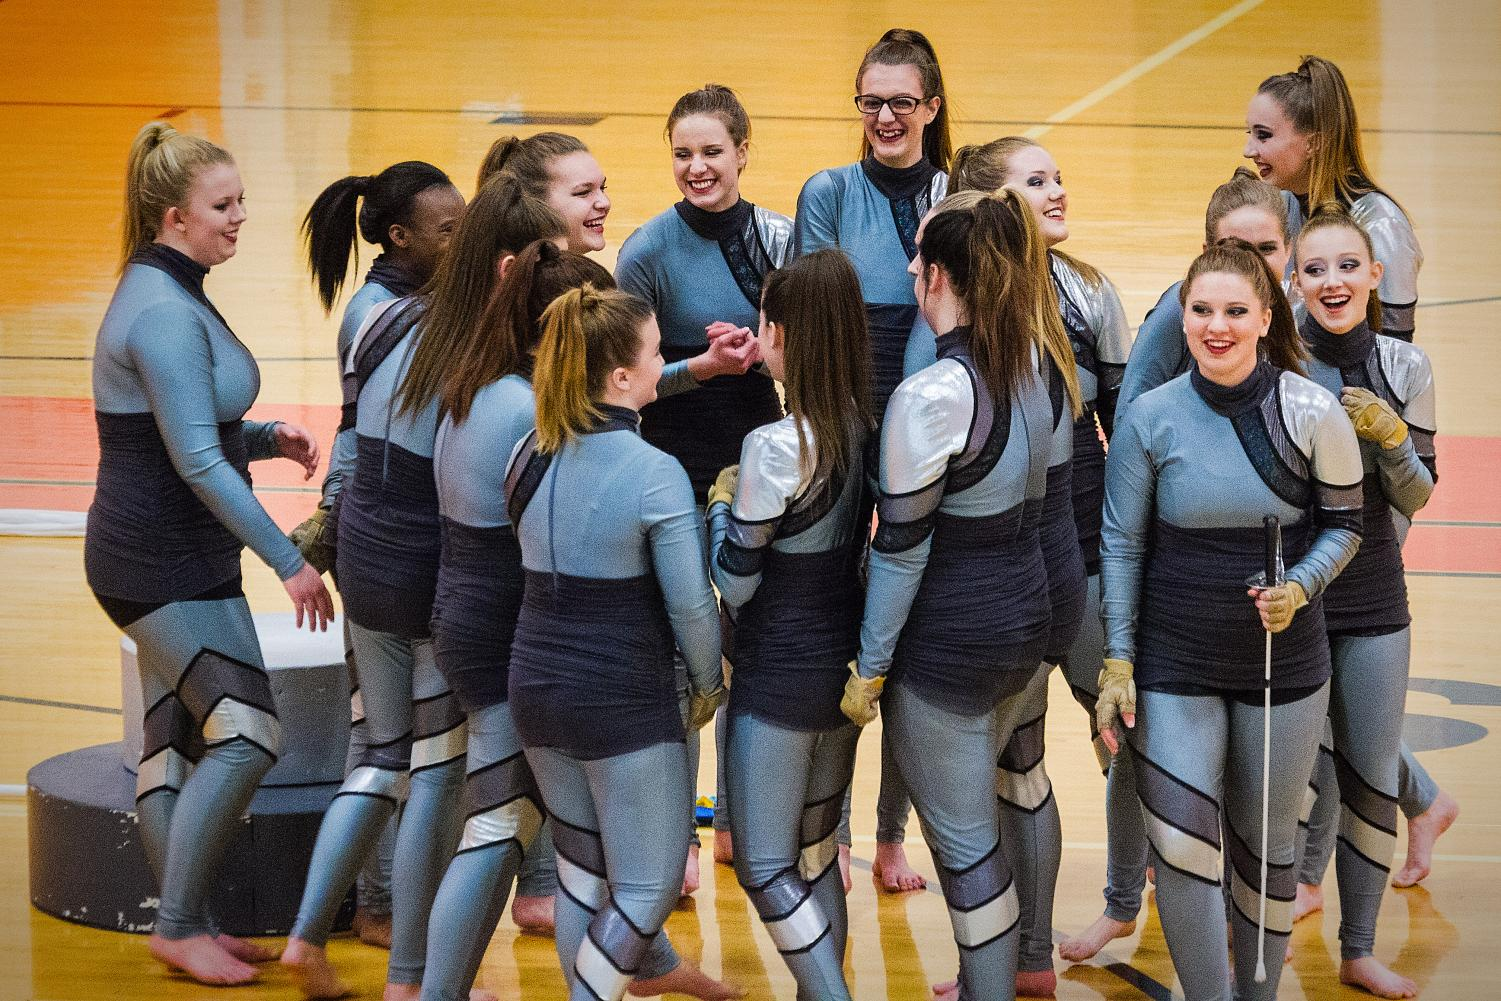 2016 marked the last year that NCHS Winter Guard would perform, the Guard merged with Normal Community West to field a more competitive team for the 2017 season.